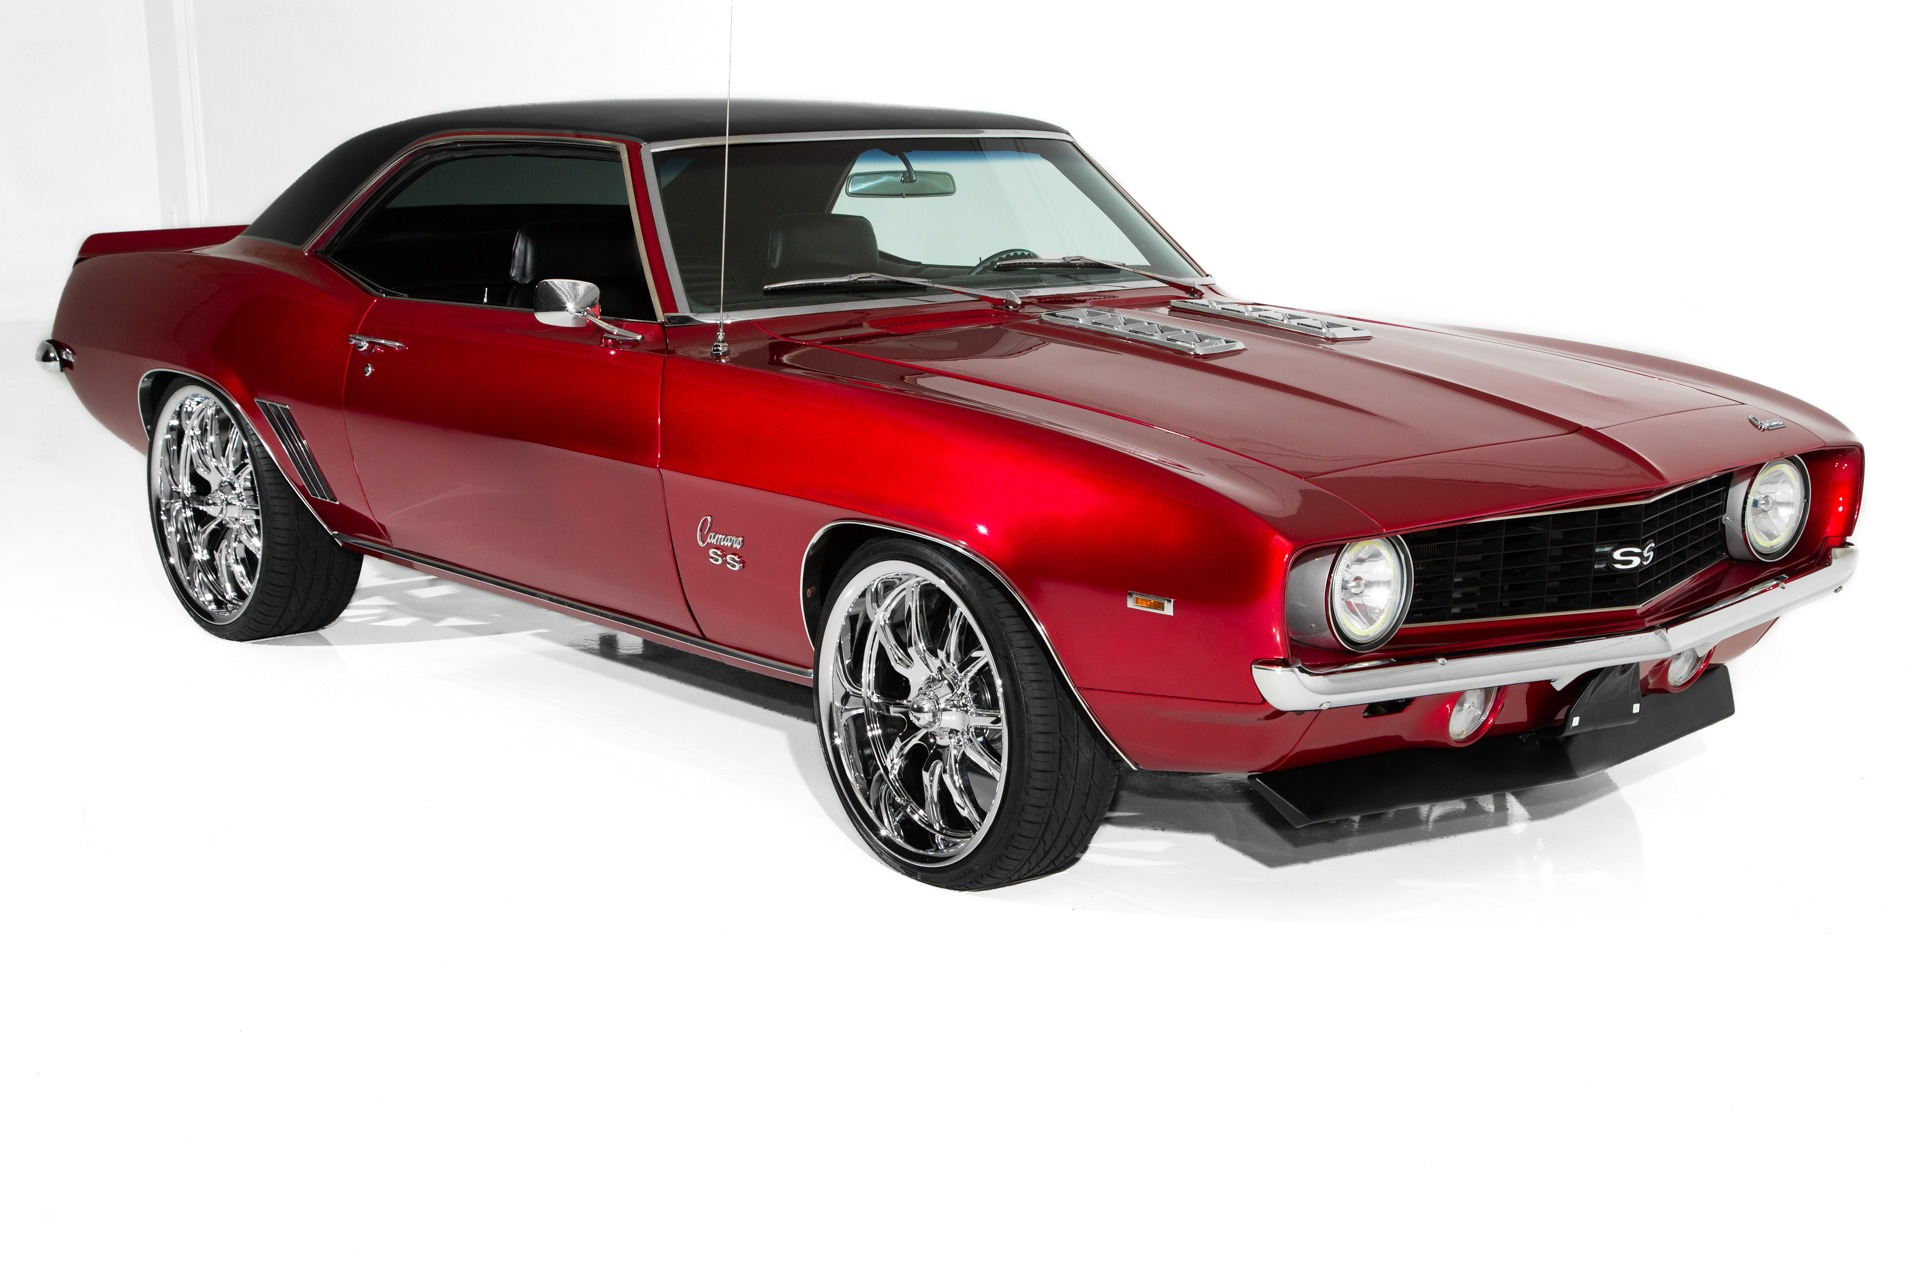 1969 Chevrolet Camaro Candy Red Pearl Pro-Tour